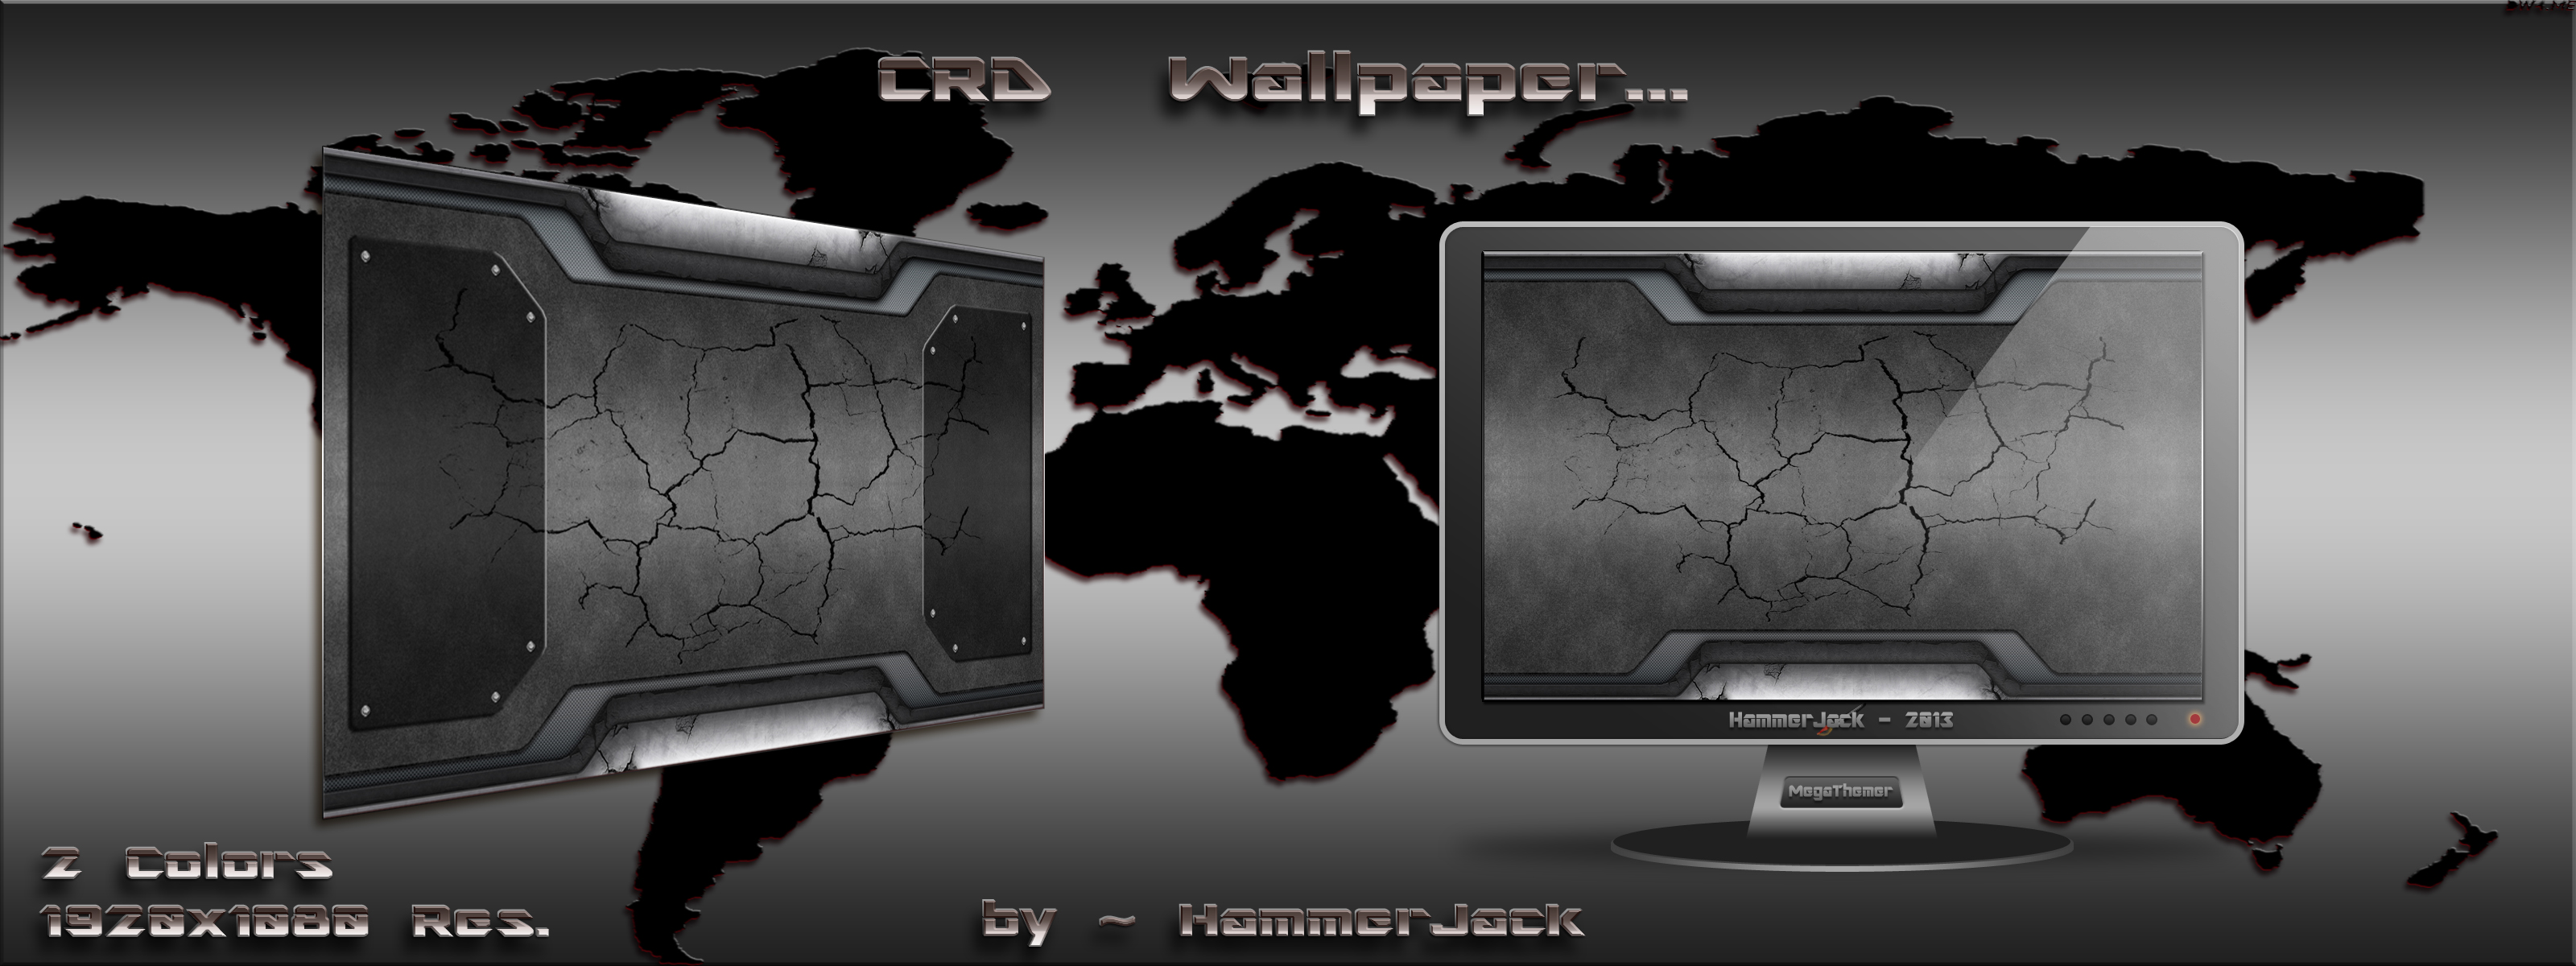 CRD (Cracked Rusty Dark) Wallpaper by mTnHJ